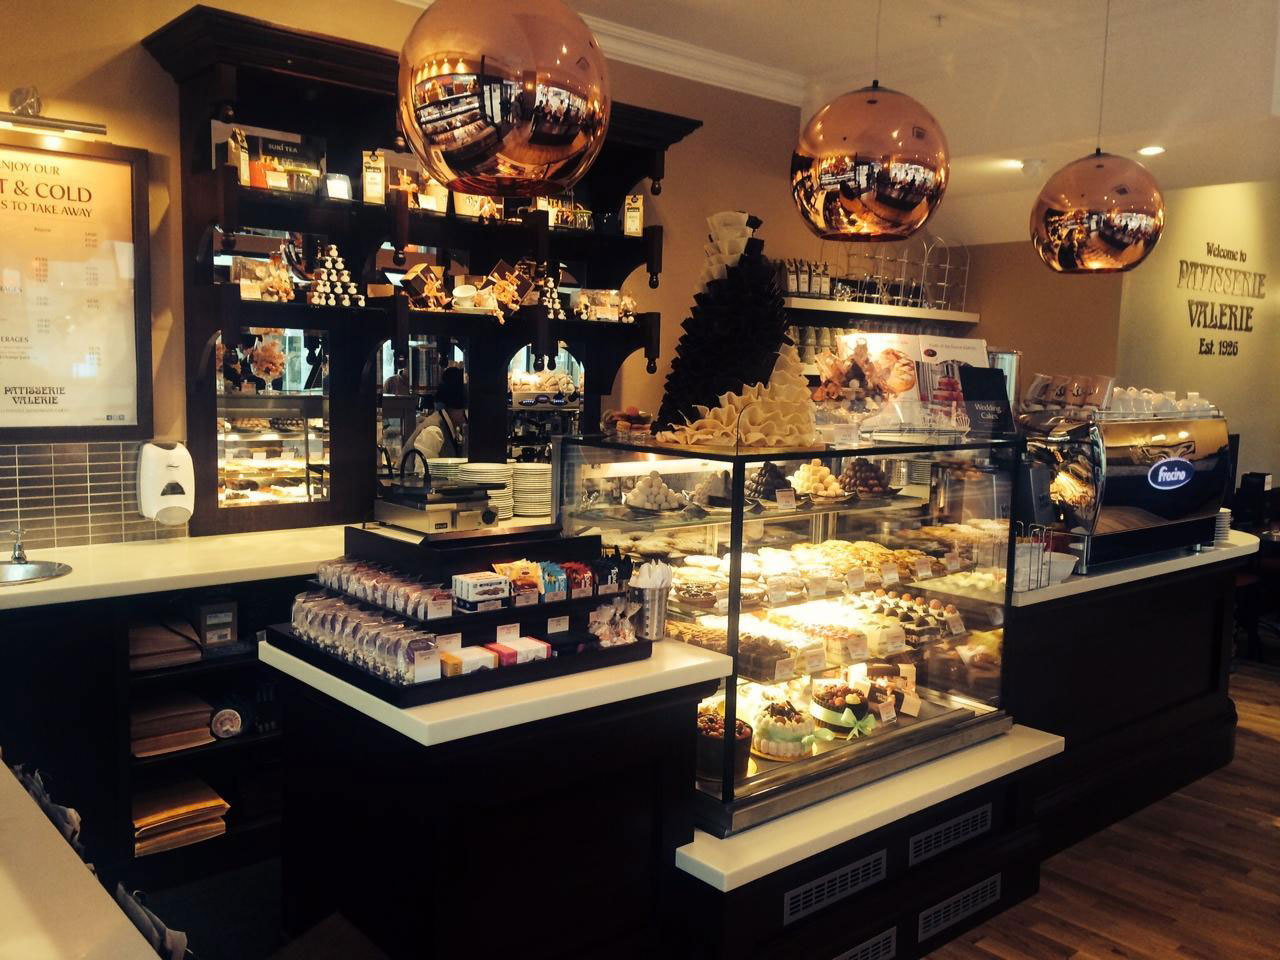 Patisserie Valerie - Edinburgh Rose Street - Edinburgh